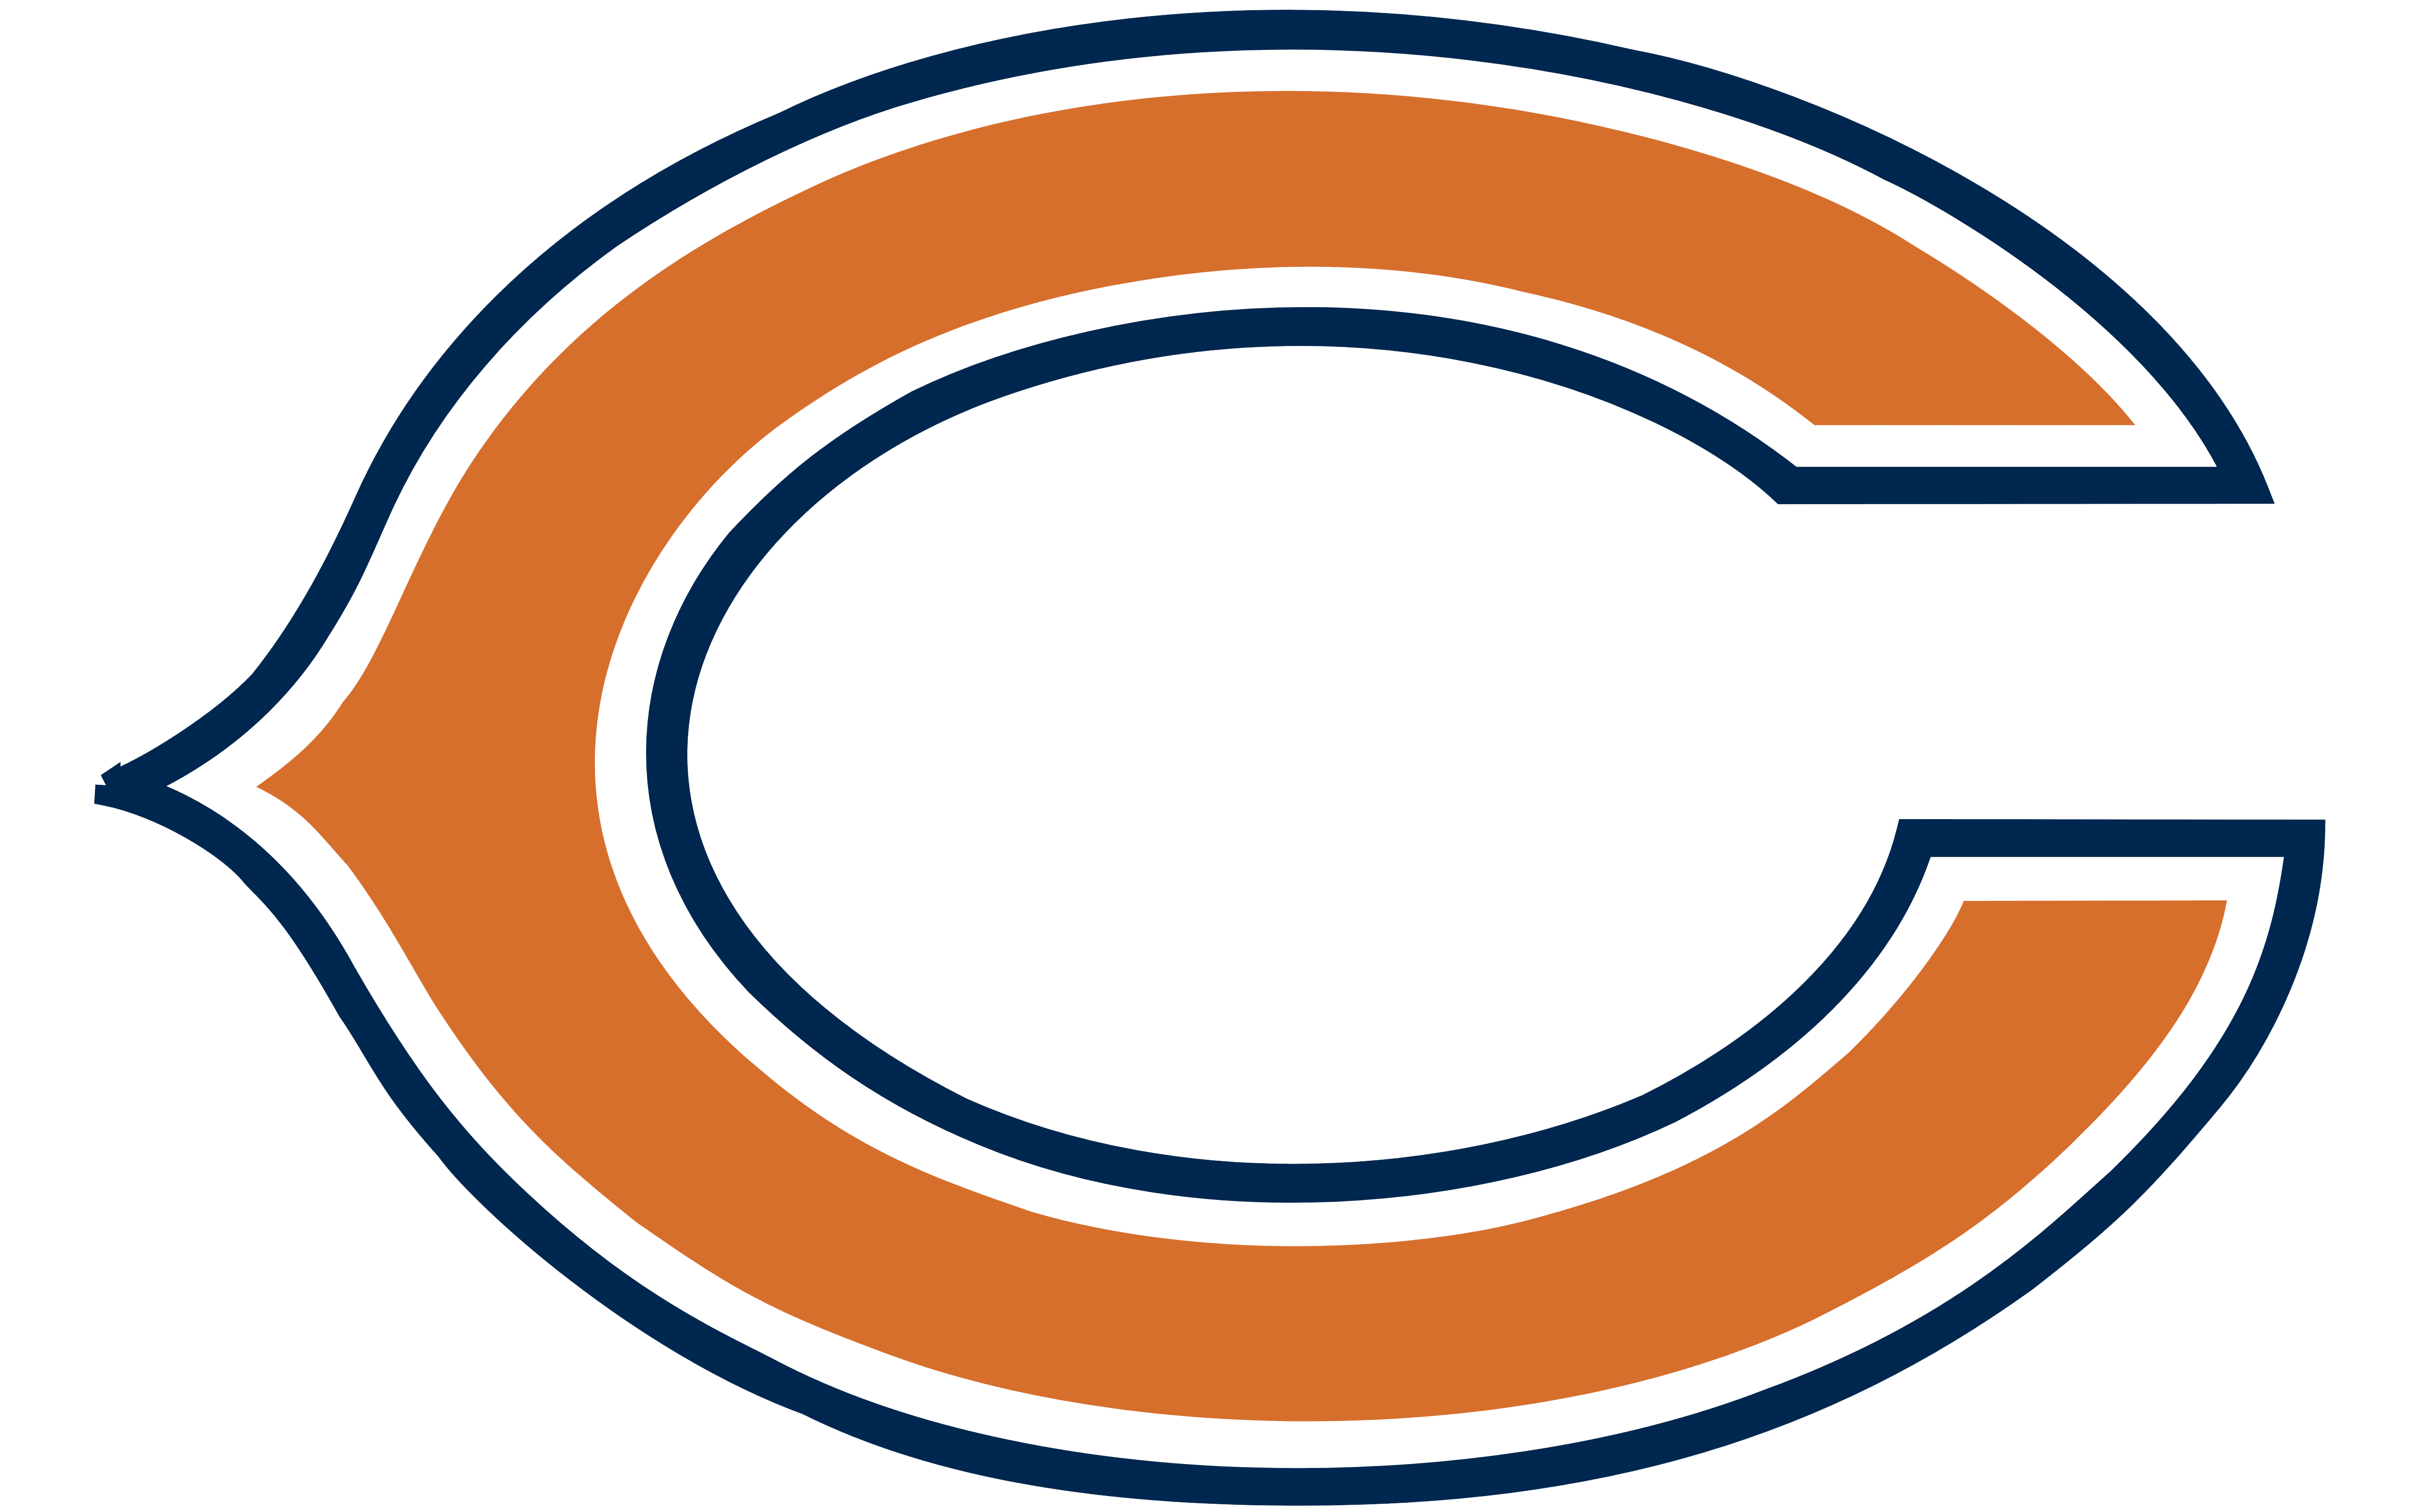 chicago bears logo  chicago bears symbol meaning  history american football clip art free american football images clip art